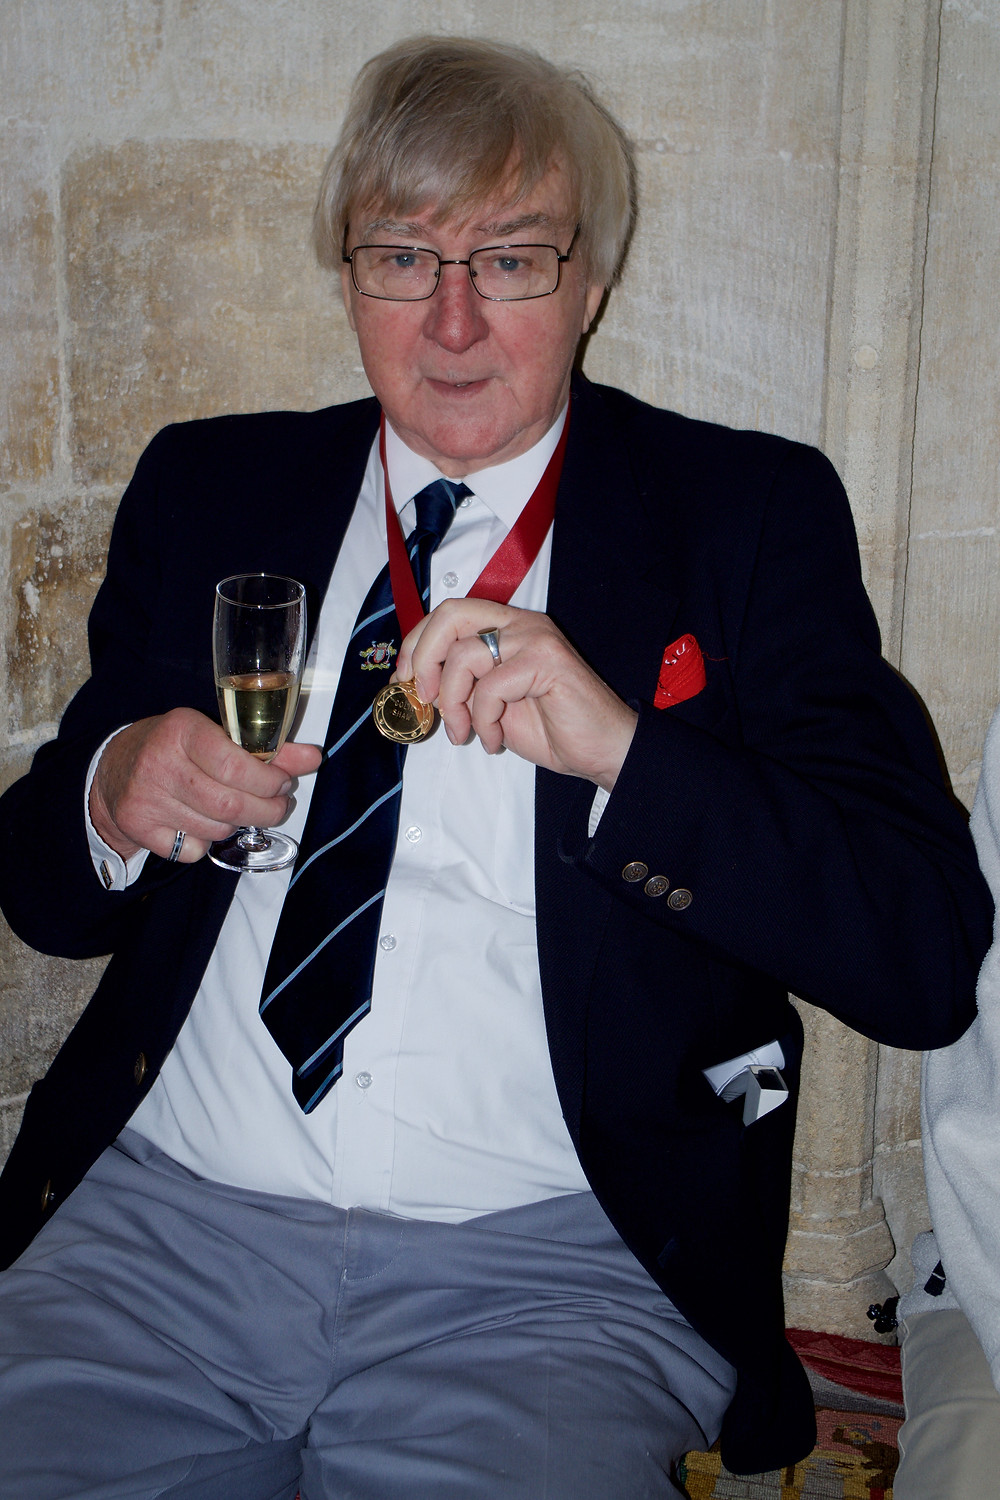 Colin Shaw on the occasion of receiving the Etheldreda Medal Award in 2016. Photograph © William Alderson.